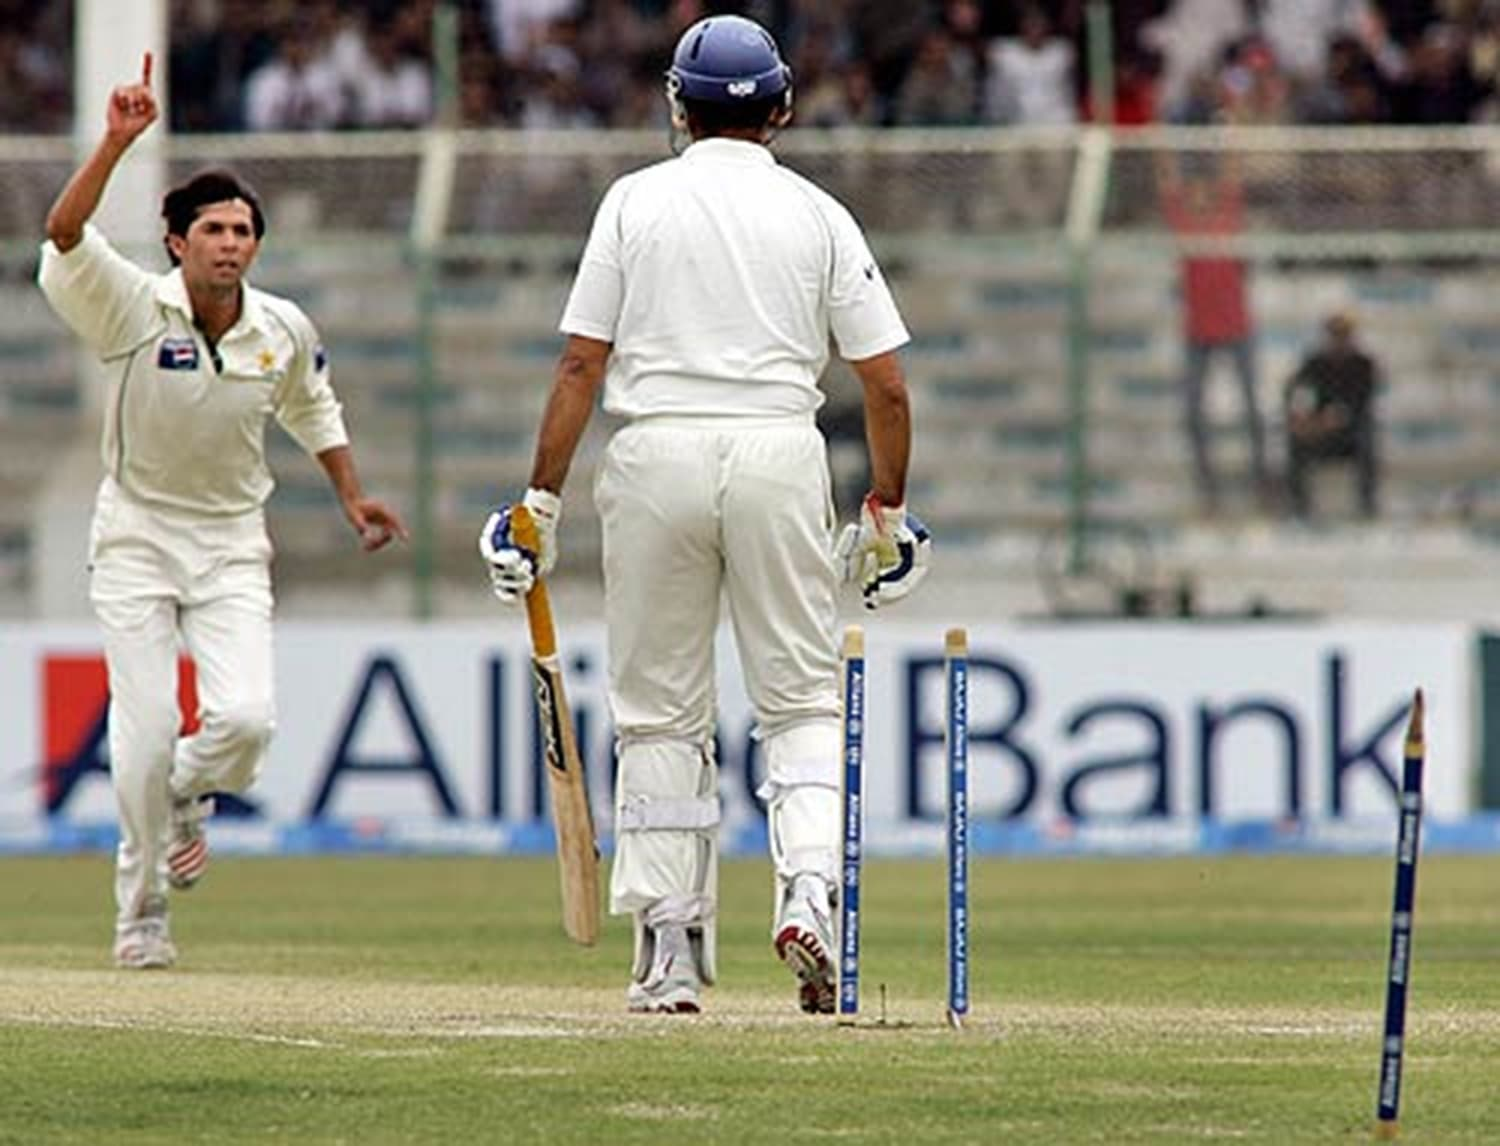 2006: Muhammad Asif cleans up another Indian batsman at the National Stadium as Pakistan nears victory. Fast bowlers have always enjoyed conditions in Karachi where sea-breeze often facilitates swing bowling. (Pic: Faisal Khalid)